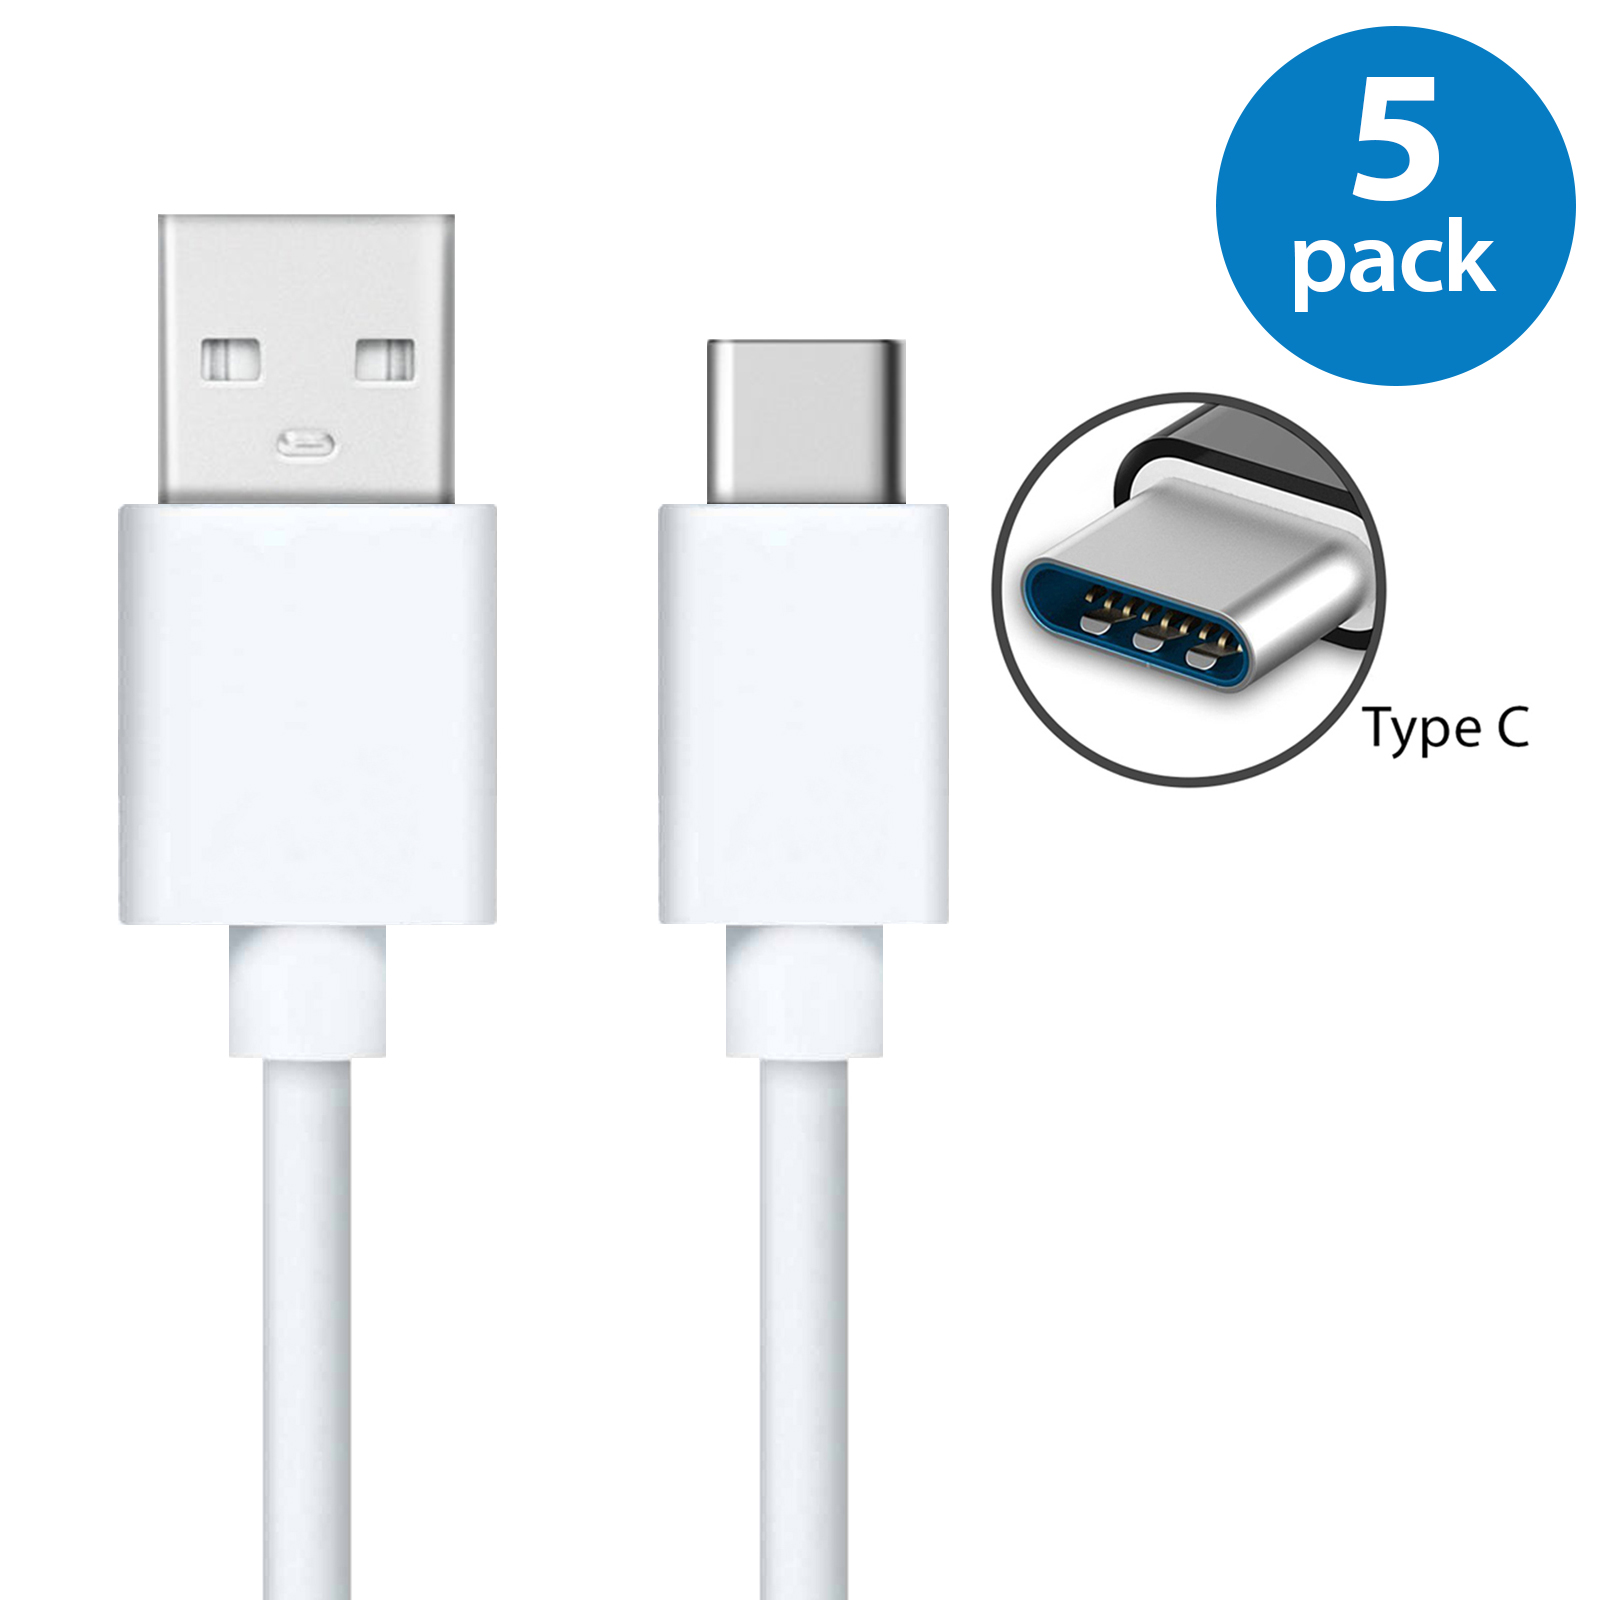 5x USB Type C Fast Charging Cable 6FT USB-C Type-C 3.1 Data Sync Charger Cable Cord For Samsung Galaxy S8 S8+ Note 8 Nexus 5X 6P OnePlus 2 3 5 LG G5 G6 V20 HTC 10 Google Pixel XL White